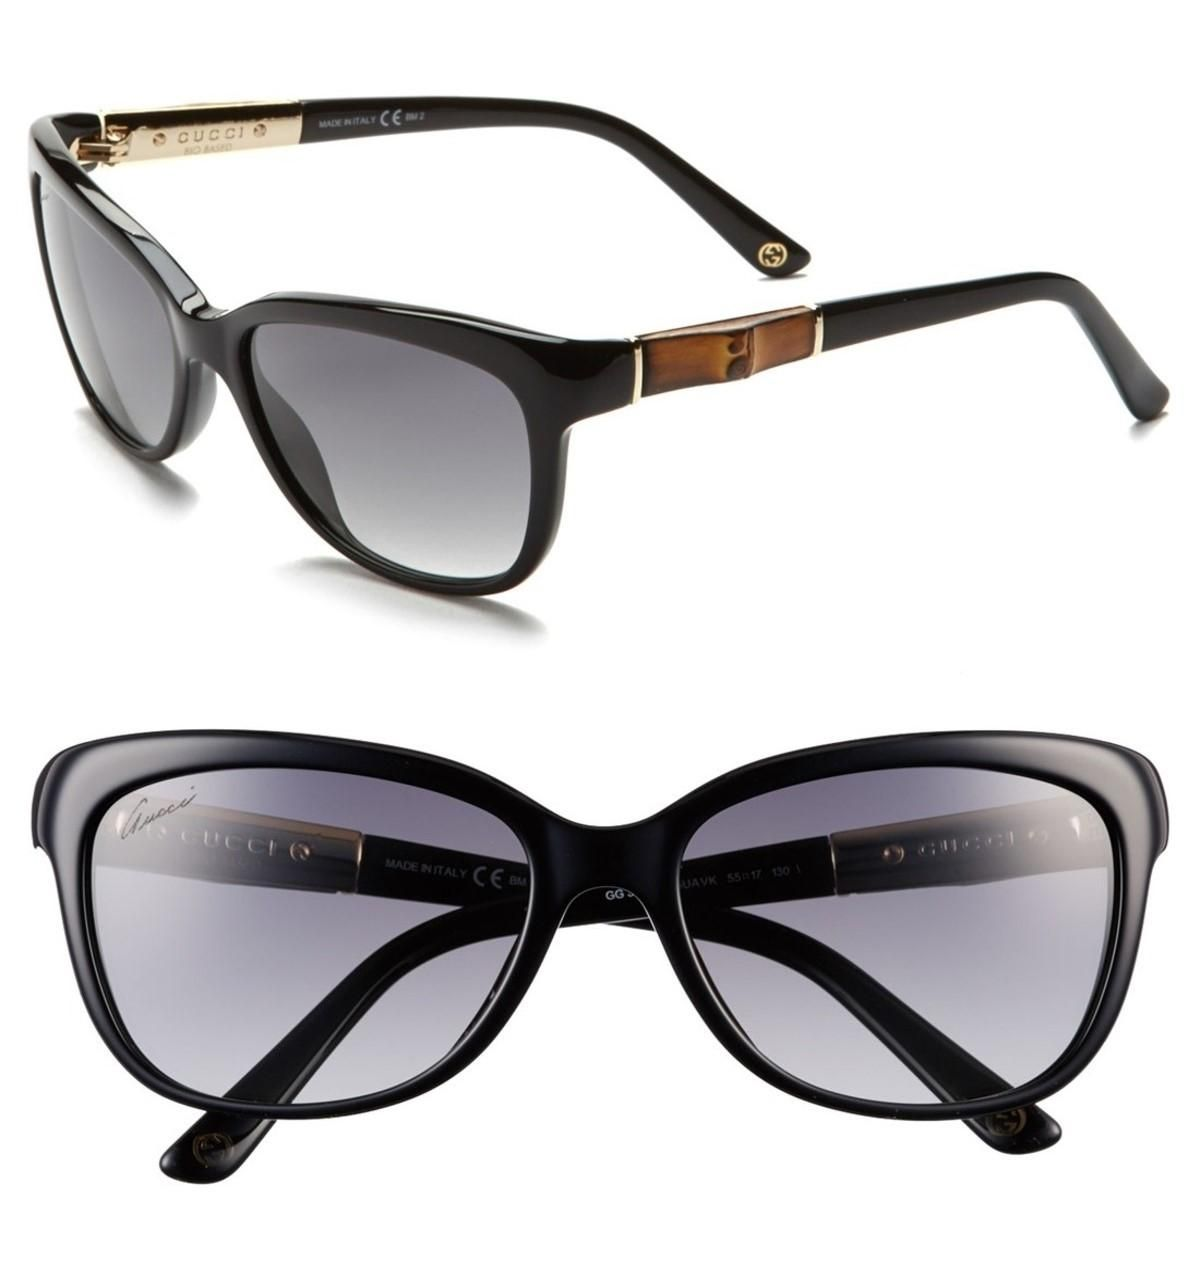 54de06543b Free shipping and guaranteed authenticity on NEW Gucci Bamboo Temple  Sunglasses